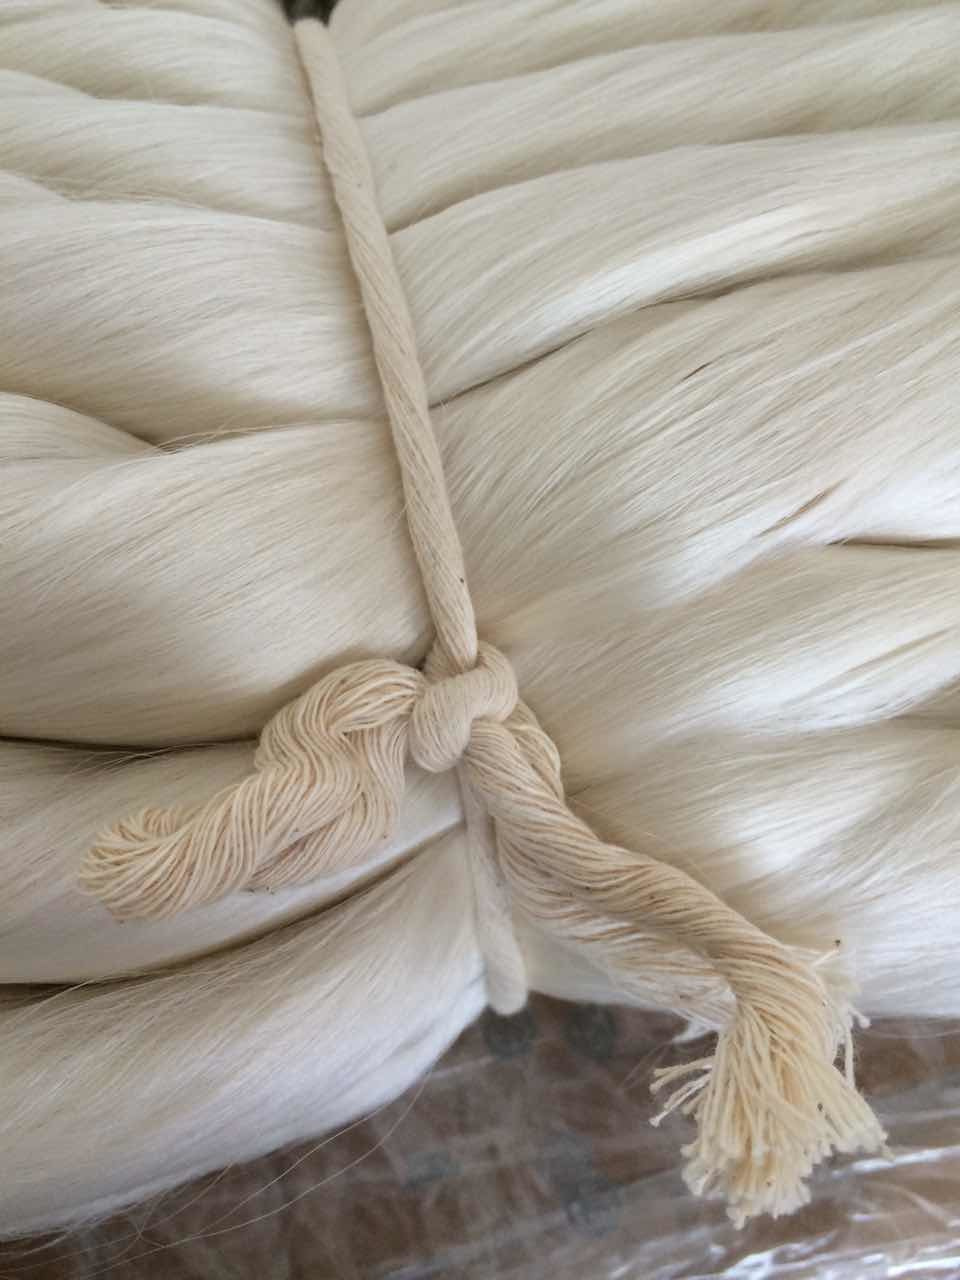 Cheapest Quotation with Highest Quality 100% Spun Silk Yarn